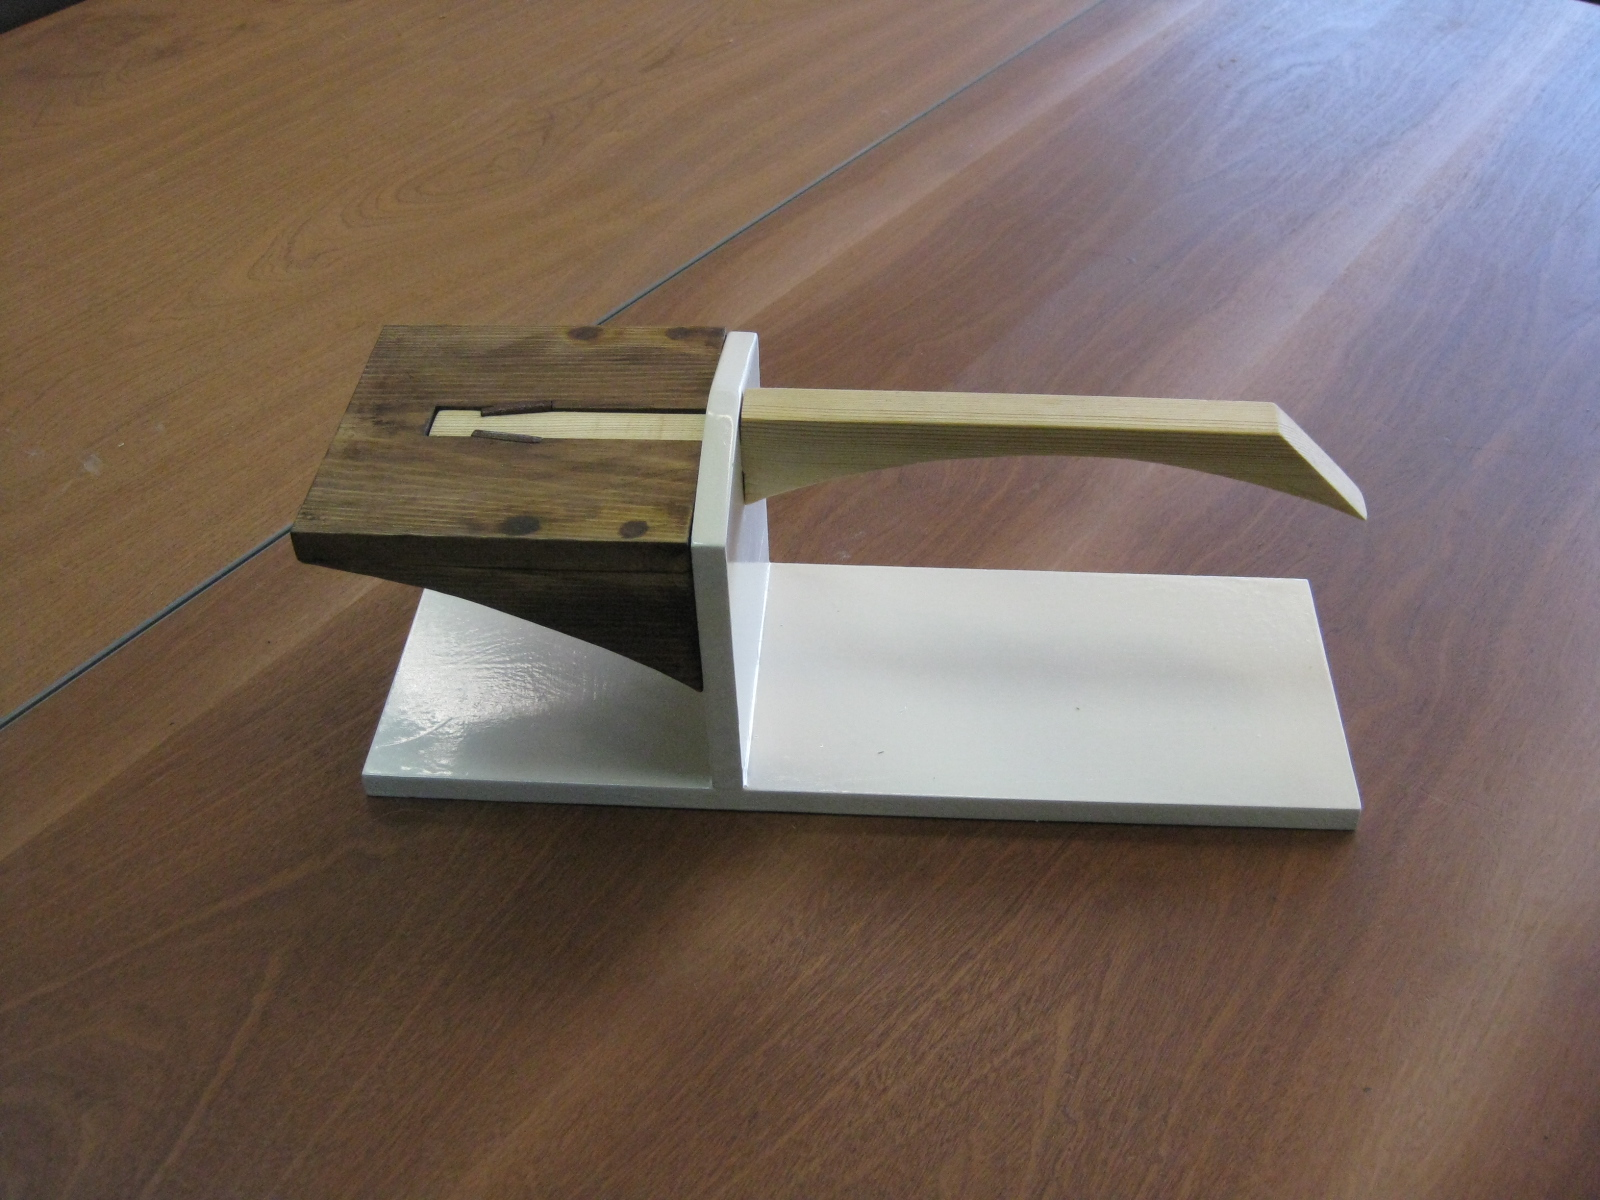 Steel Chair Joints Cheap Study Desk And Good Wood Pdf Quick Woodworking Projects